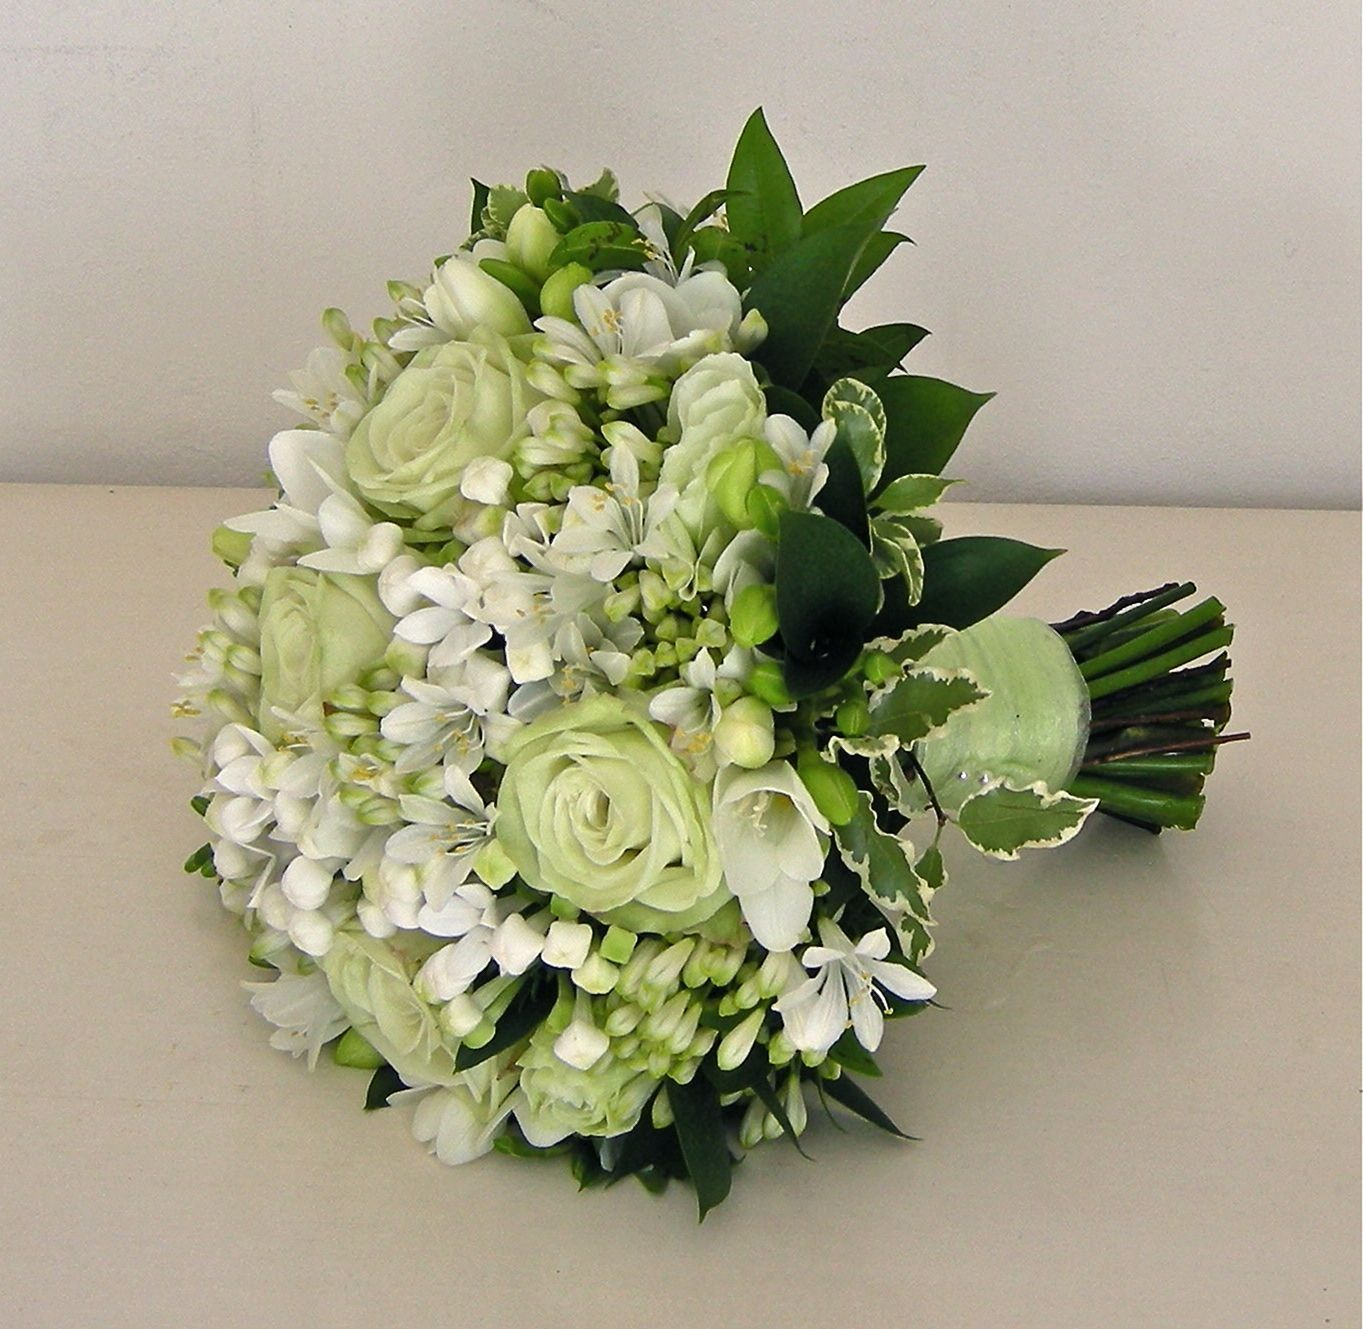 50 Most Beautiful White And Green Wedding Bouquet Flower